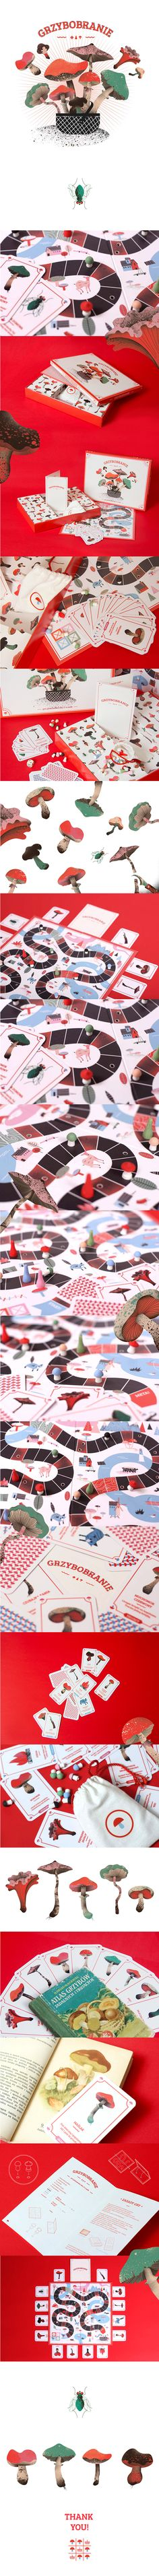 GRZYBOBRANIE - Mushrooming Board Game on Behance